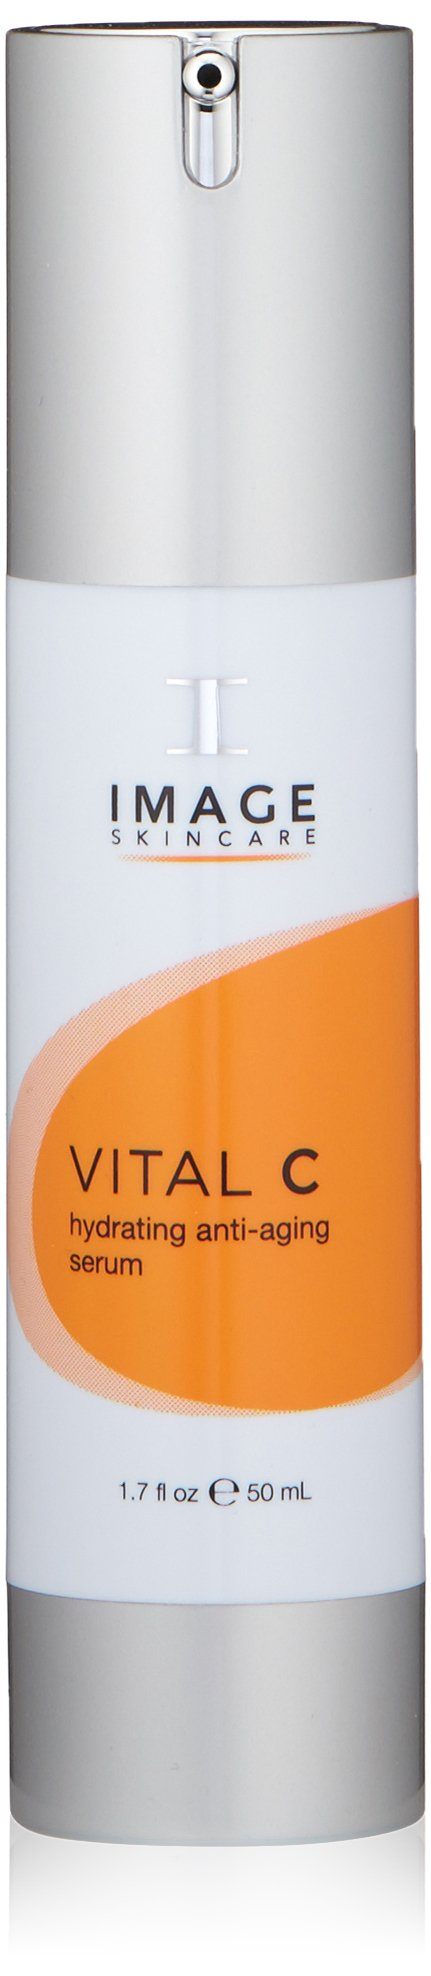 Image skincare Vital C Hydrating Anti Aging Serum, 1.7 Fluid Ounce by IMAGE Skincare